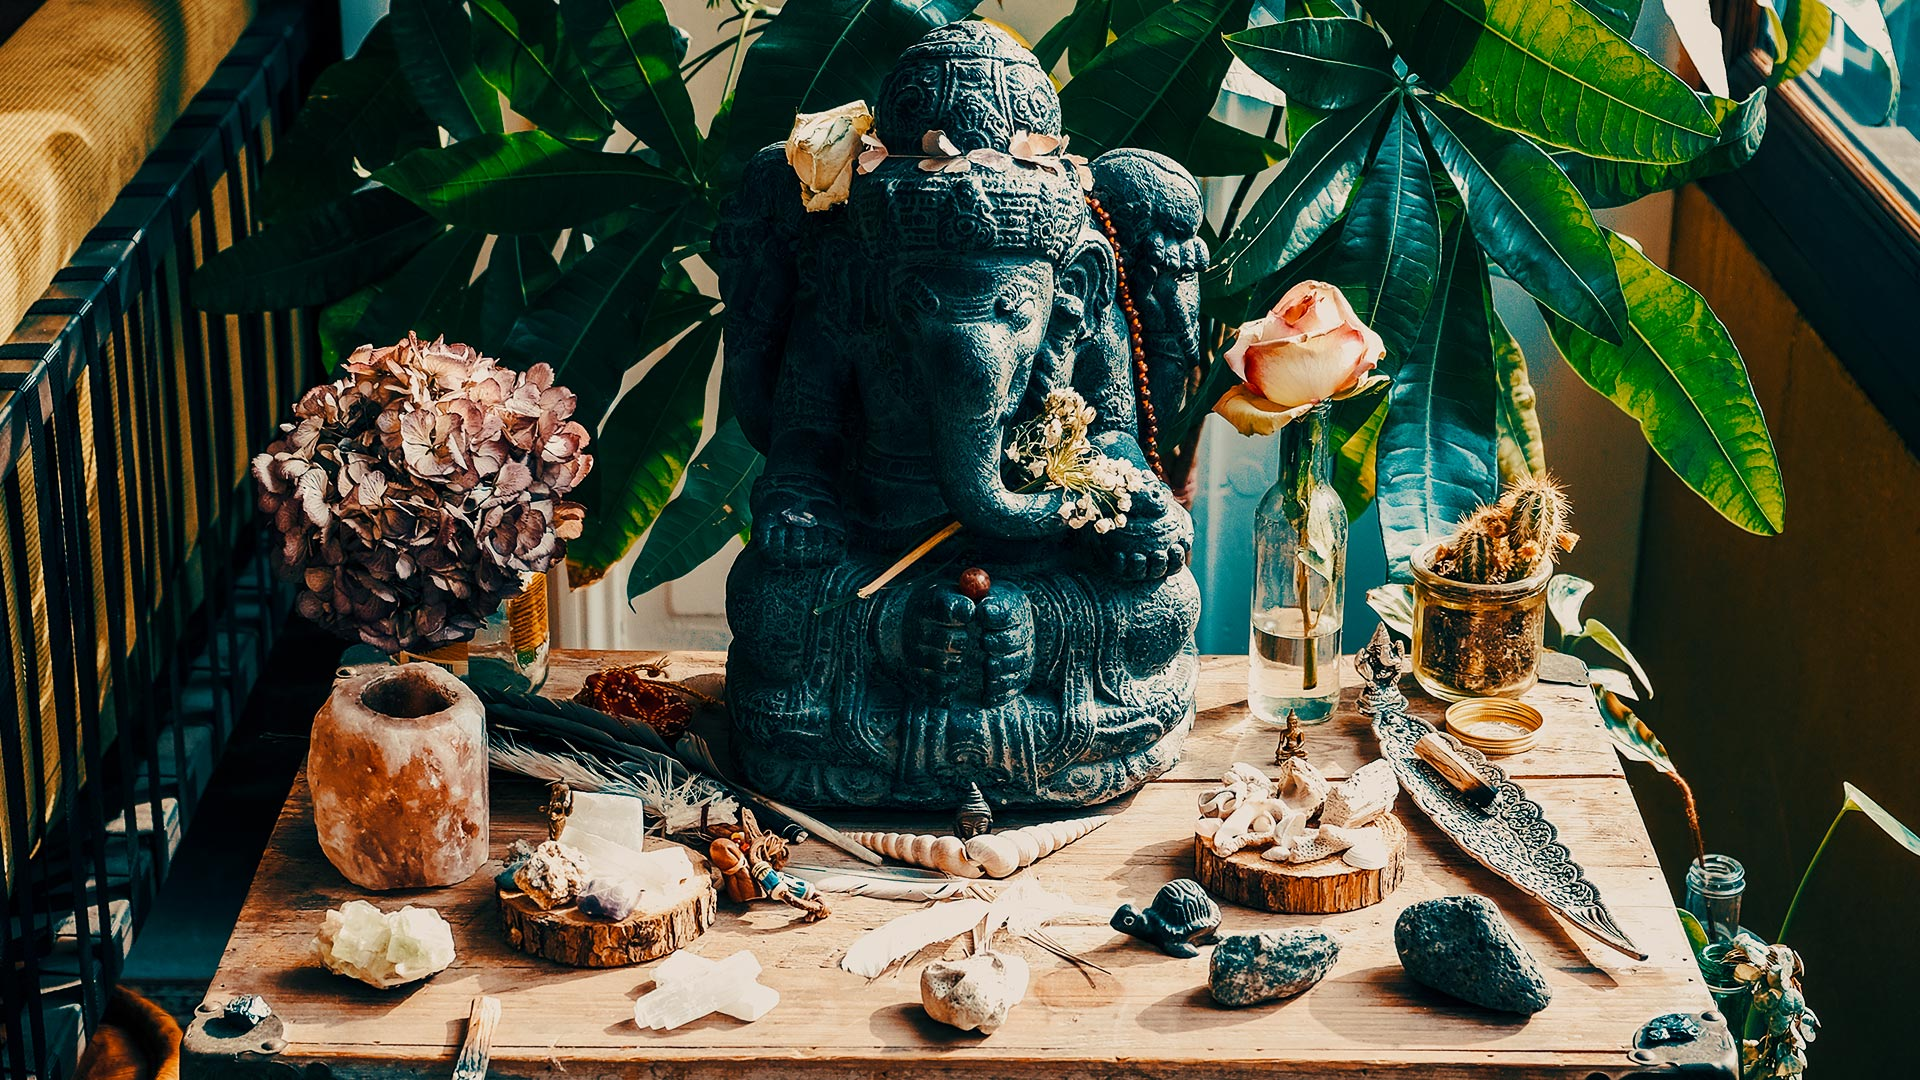 Sacred Statues - In The Conscious Club you find many different religious statues from Hinduism, Buddhism and Shamanism. We display them for protection and the clearing of the path to enlightenment.